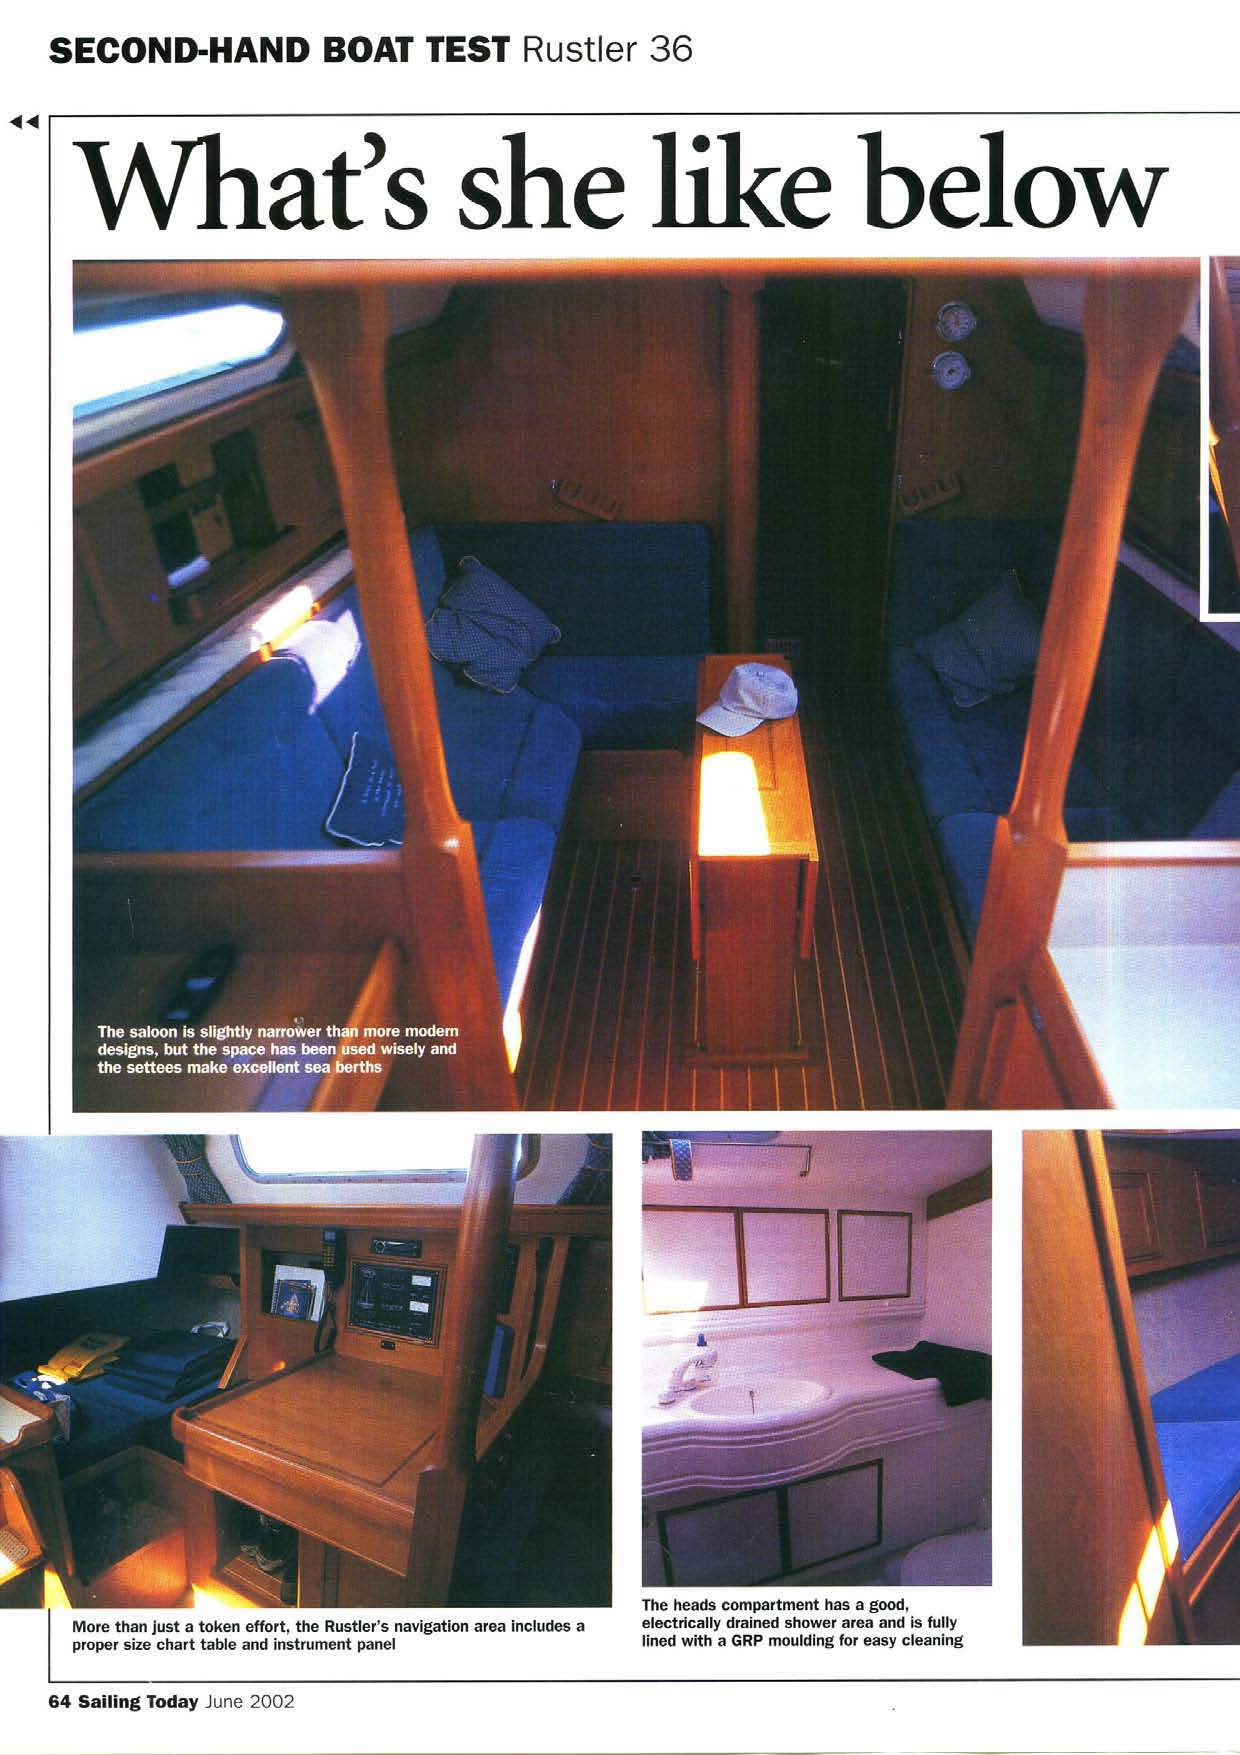 Rustler-36-review-ST62-June-2002-Sailor Today Pagina 4.jpg